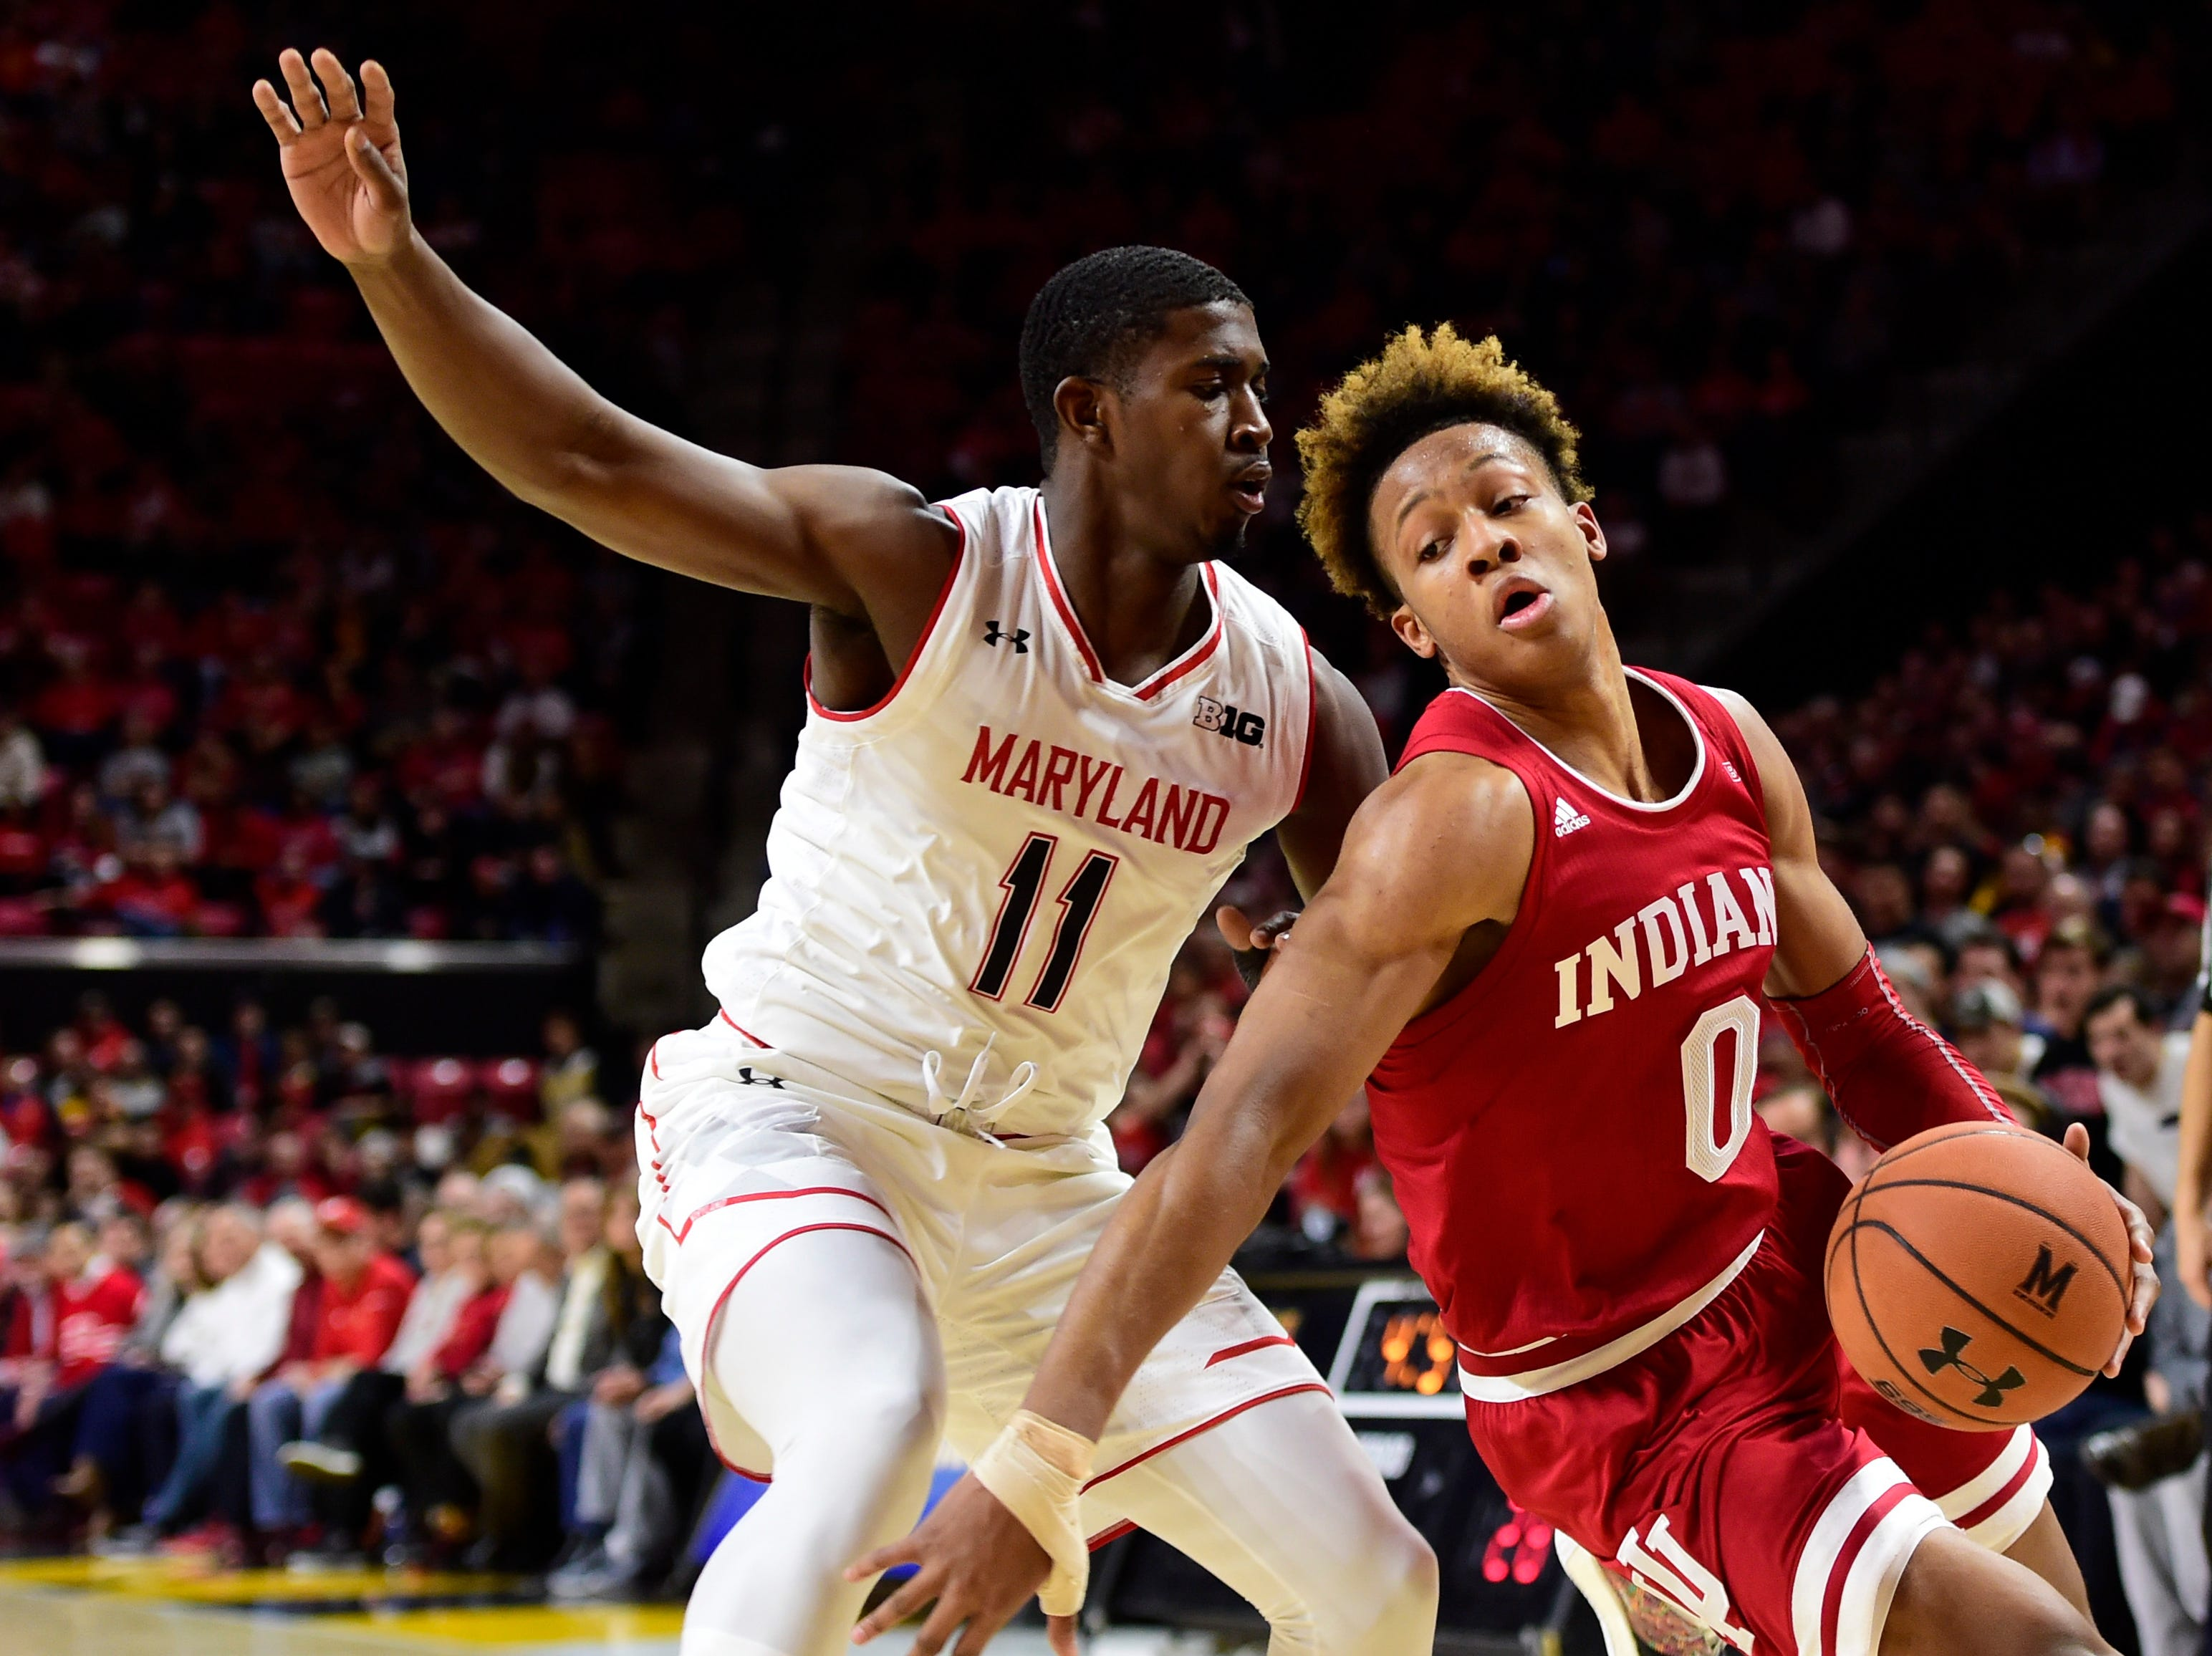 Jan 11, 2019; College Park, MD, USA;  Indiana Hoosiers guard Romeo Langford (0) dribbles as Maryland Terrapins guard Darryl Morsell (11) defends during the first half at XFINITY Center. Mandatory Credit: Tommy Gilligan-USA TODAY Sports